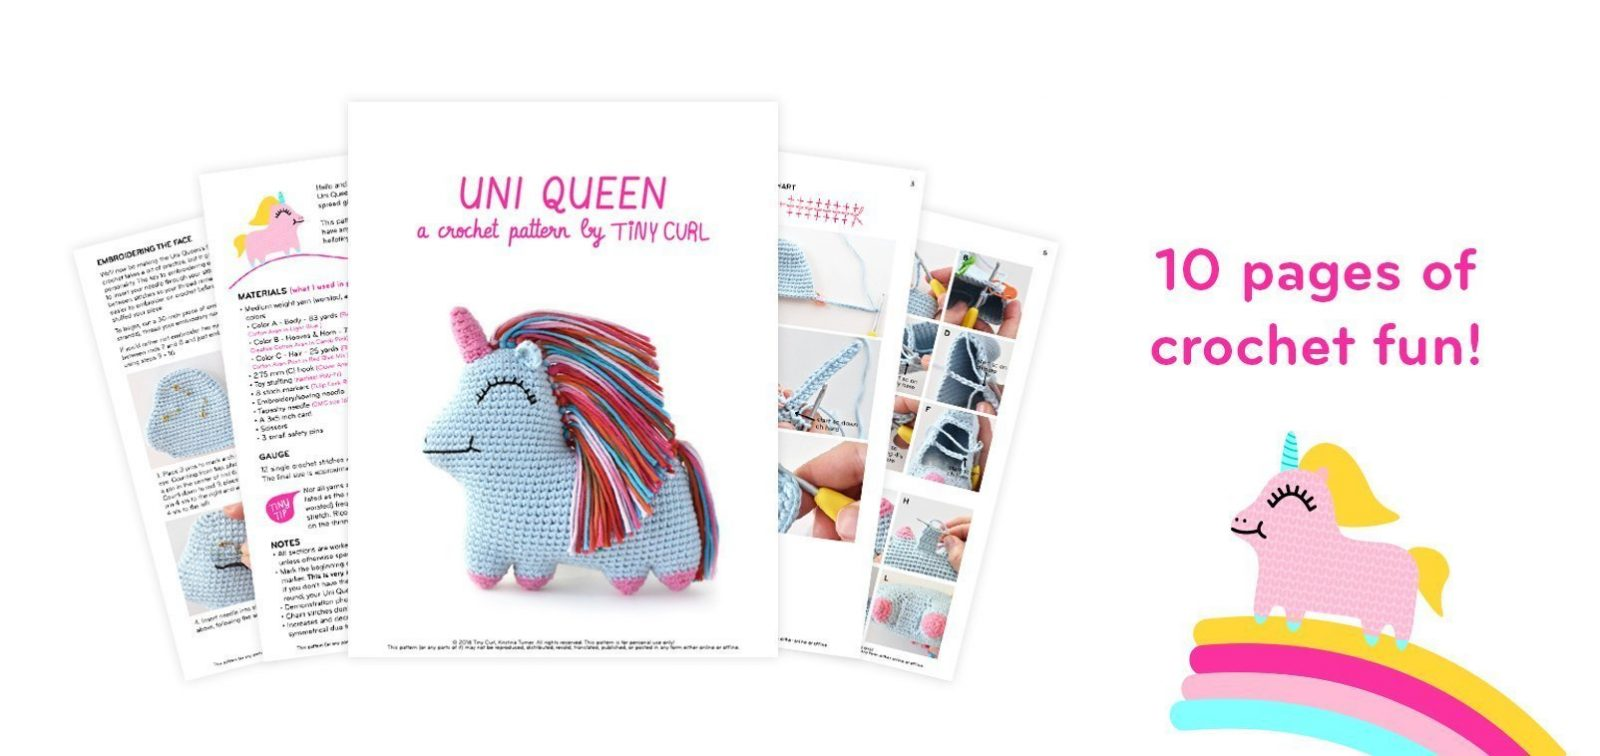 PDF pattern image for the rainbow unicorn amigurumi pattern for Uni Queen.